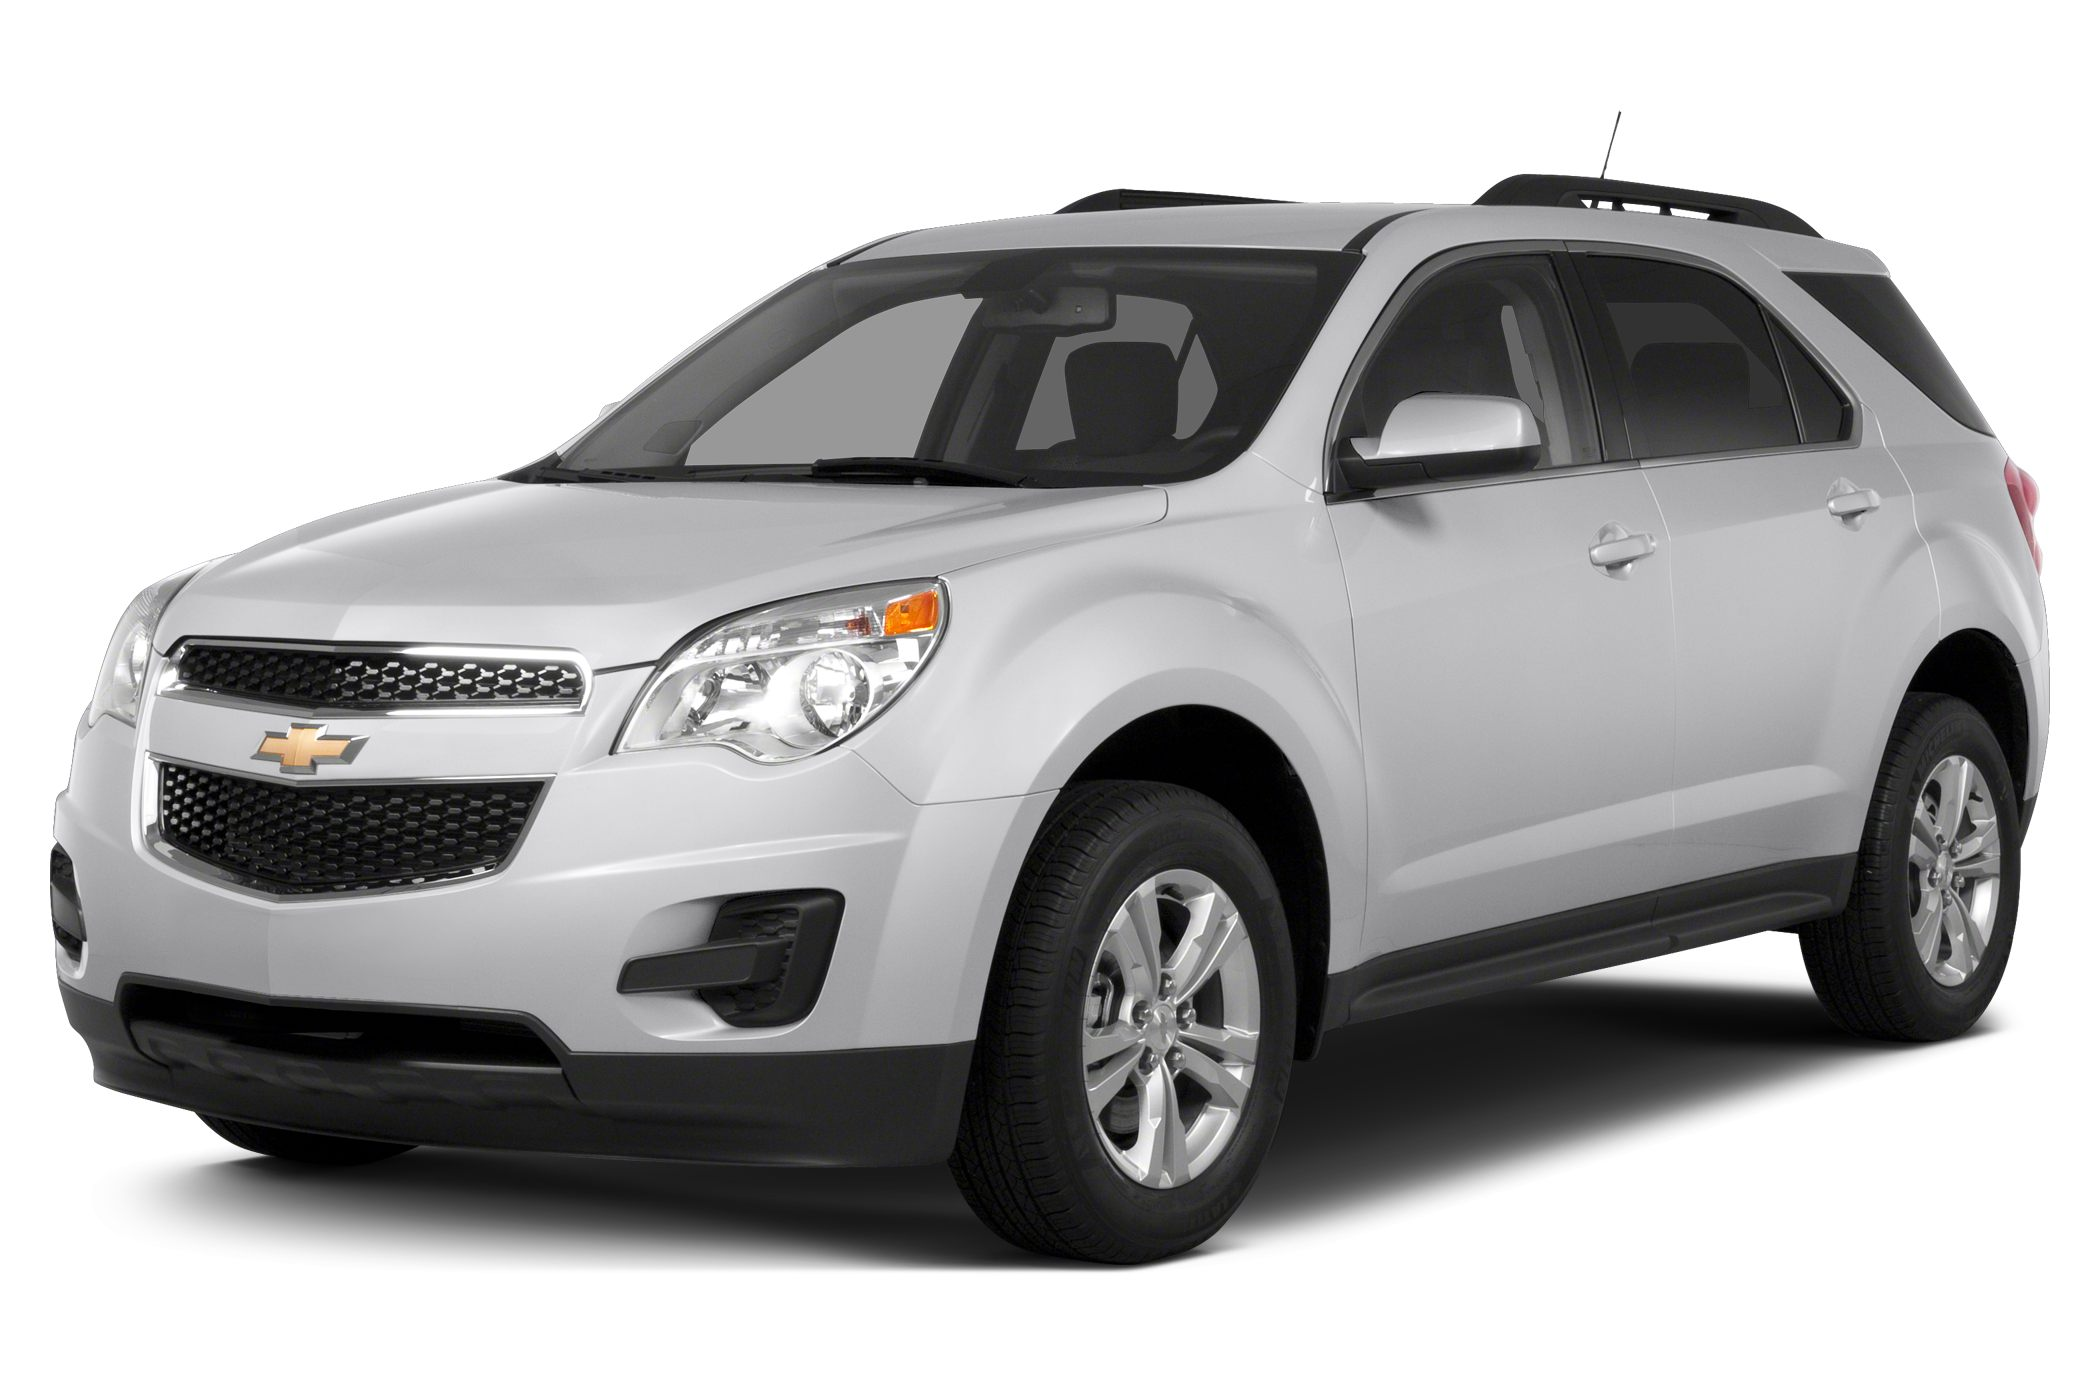 2015 Chevrolet Equinox 2LT SUV for sale in Minocqua for $35,030 with 0 miles